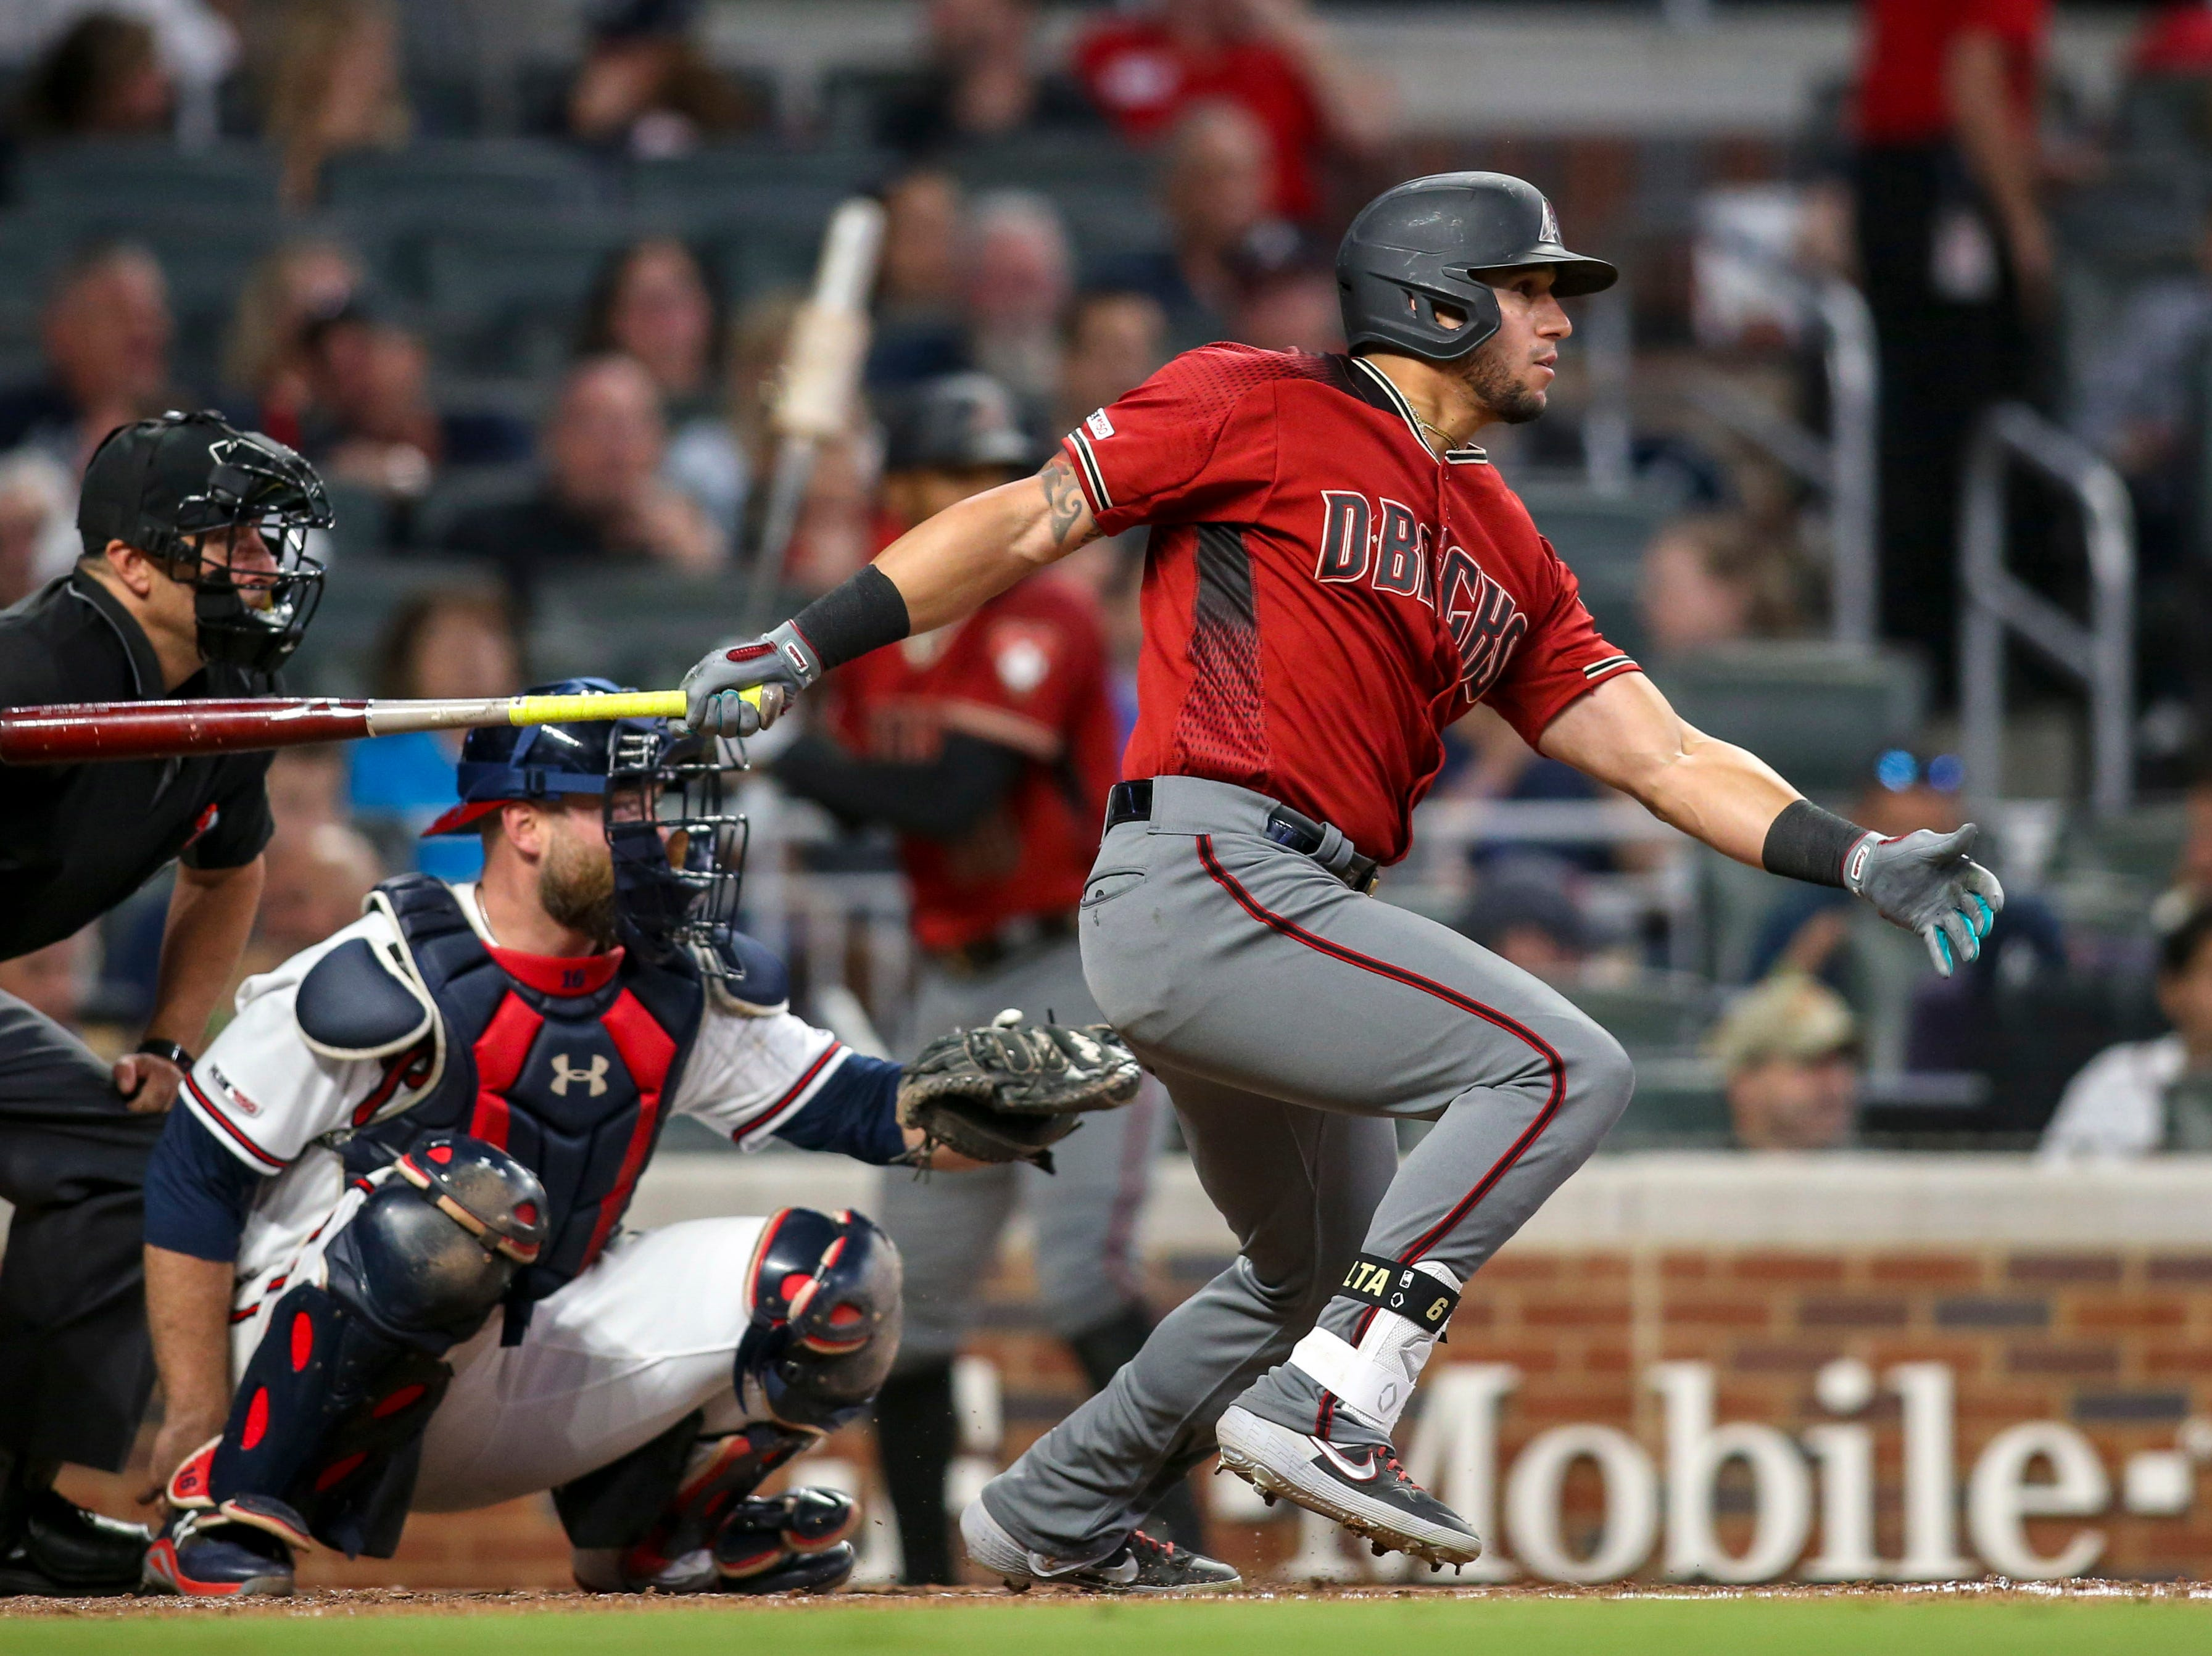 Apr 17, 2019; Atlanta, GA, USA; Arizona Diamondbacks left fielder David Peralta (6) hits a single against the Atlanta Braves in the seventh inning at SunTrust Park. Mandatory Credit: Brett Davis-USA TODAY Sports